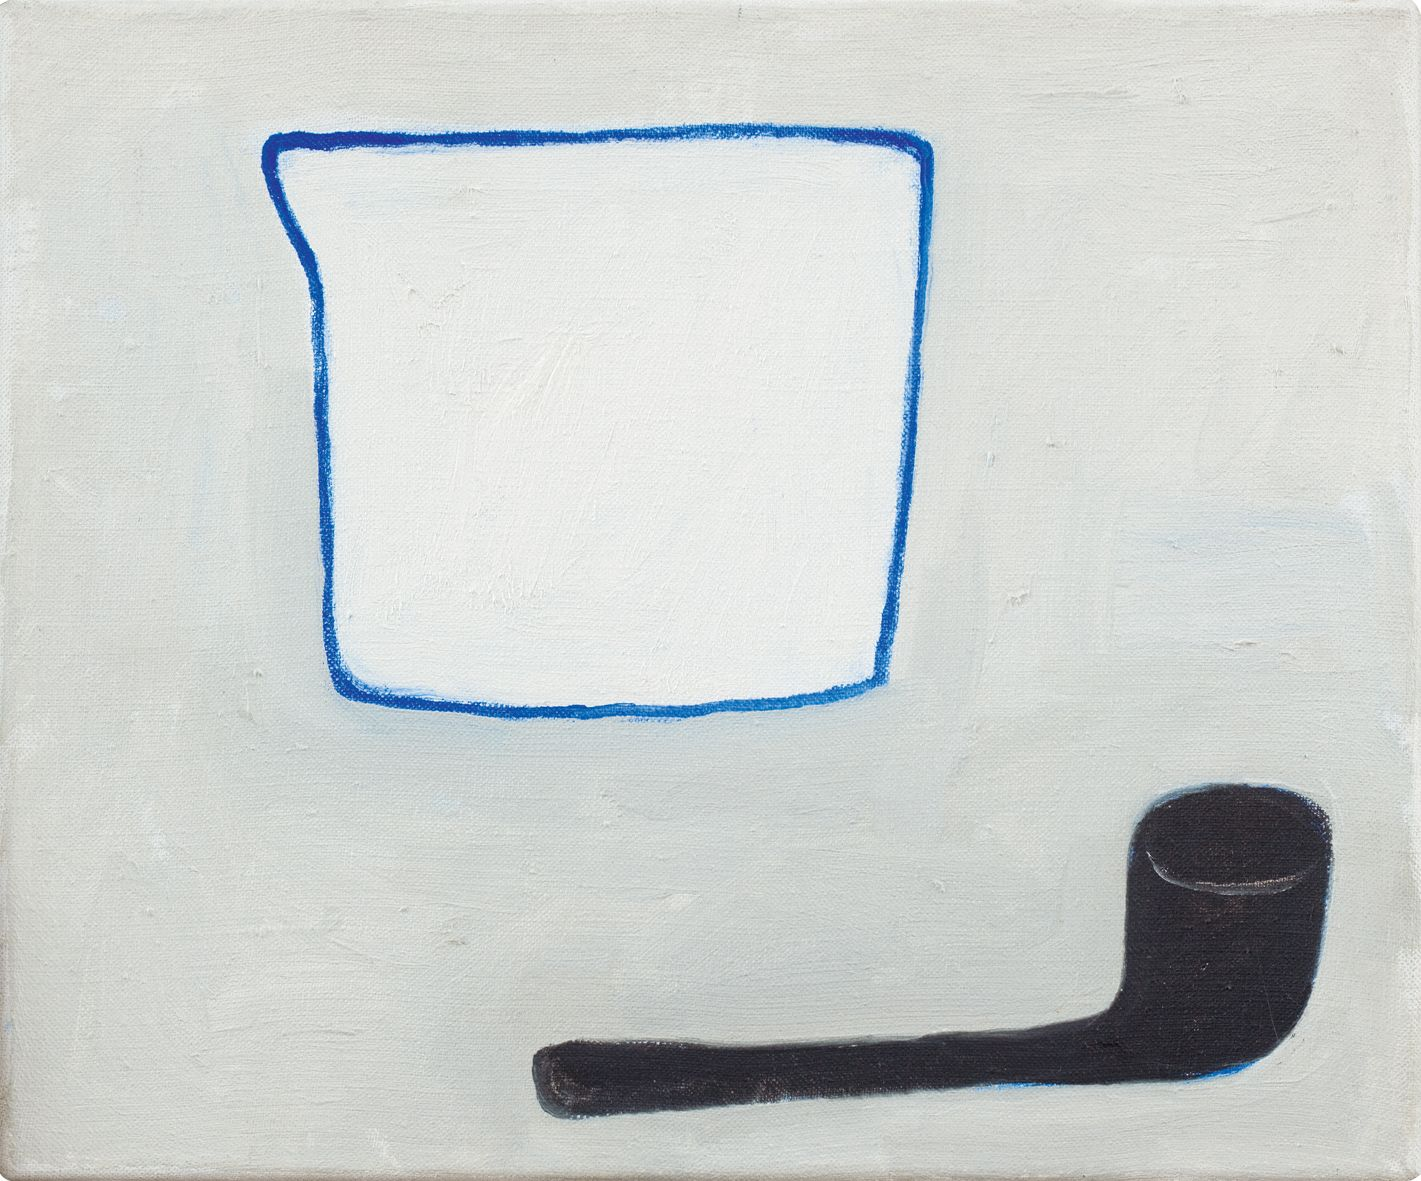 """William Scott. Jug and Pipe. 1983. Oil on canvas. 10"""" x 12"""" at Anita Rogers Gallery"""